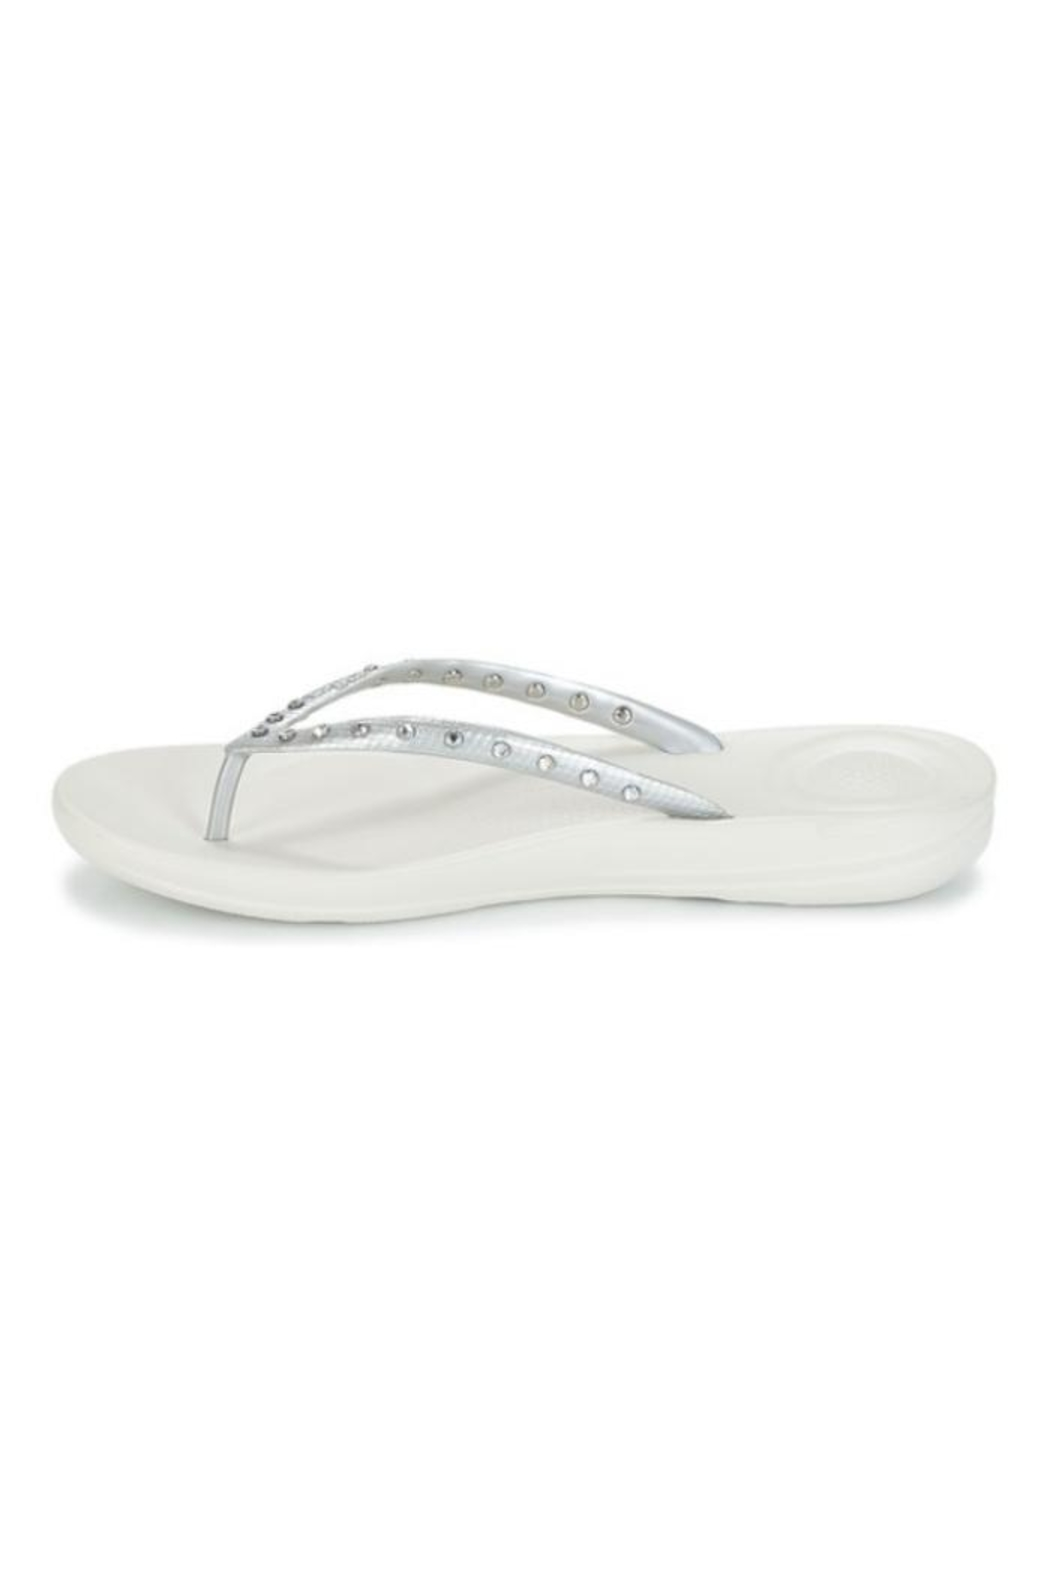 1e2aa444d539 Fitflop Iqushion Sandal from Philadelphia by Hot Foot Boutique ...